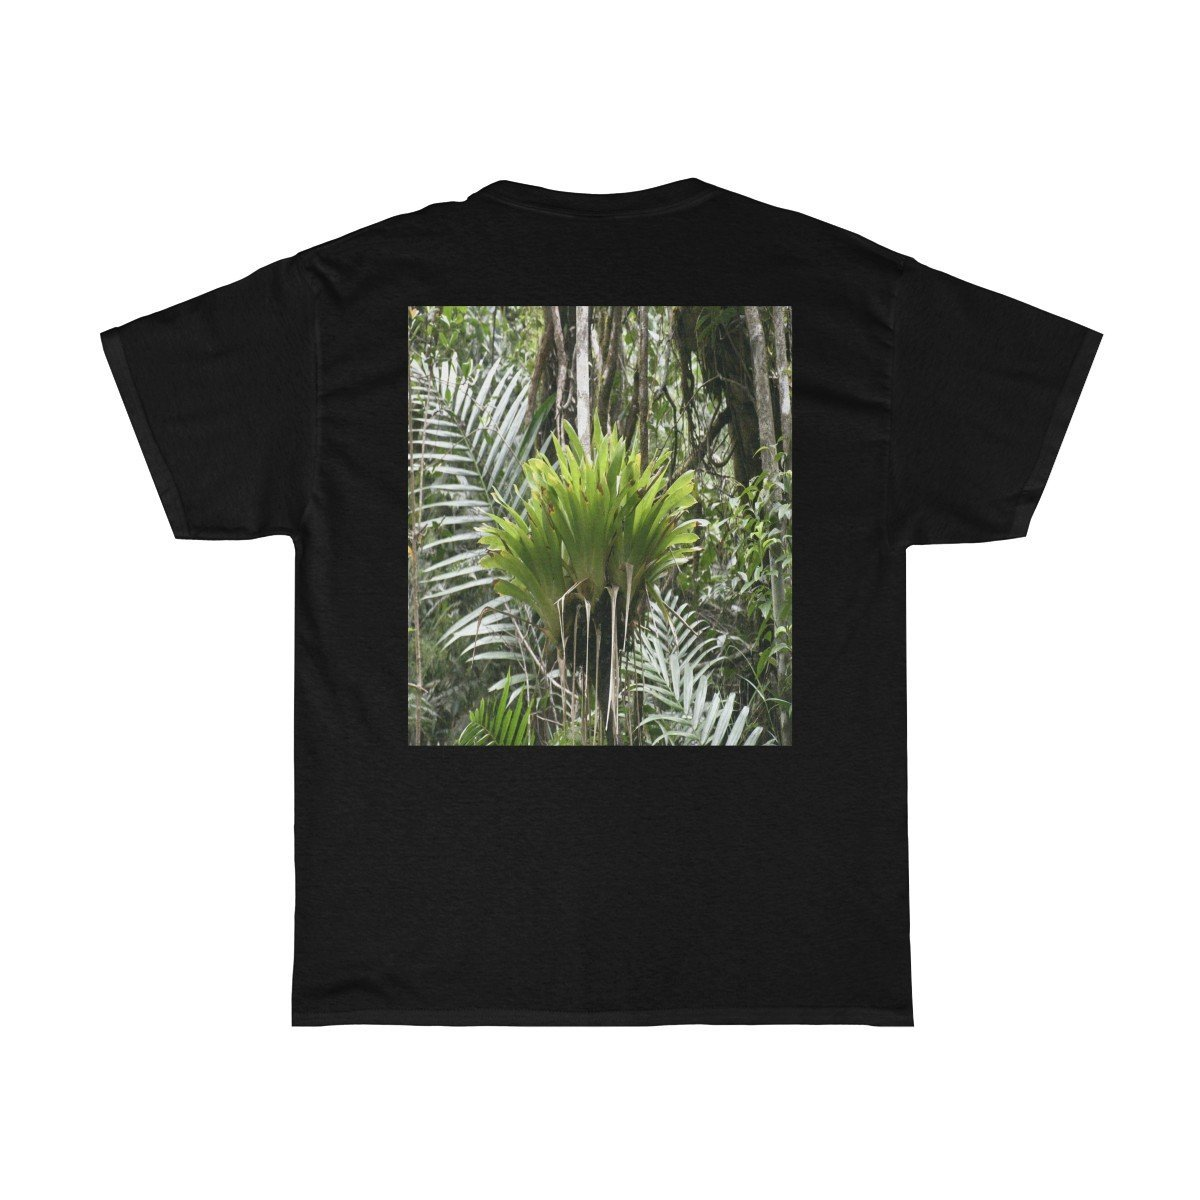 🐱‍🐉 Life@Forest - 😲 $12 - Gilman 5000 - Unisex Heavy Cotton Tee - 👍 BY OPT OnDemand - Fulfilled in Czech Republic - Yunque Store